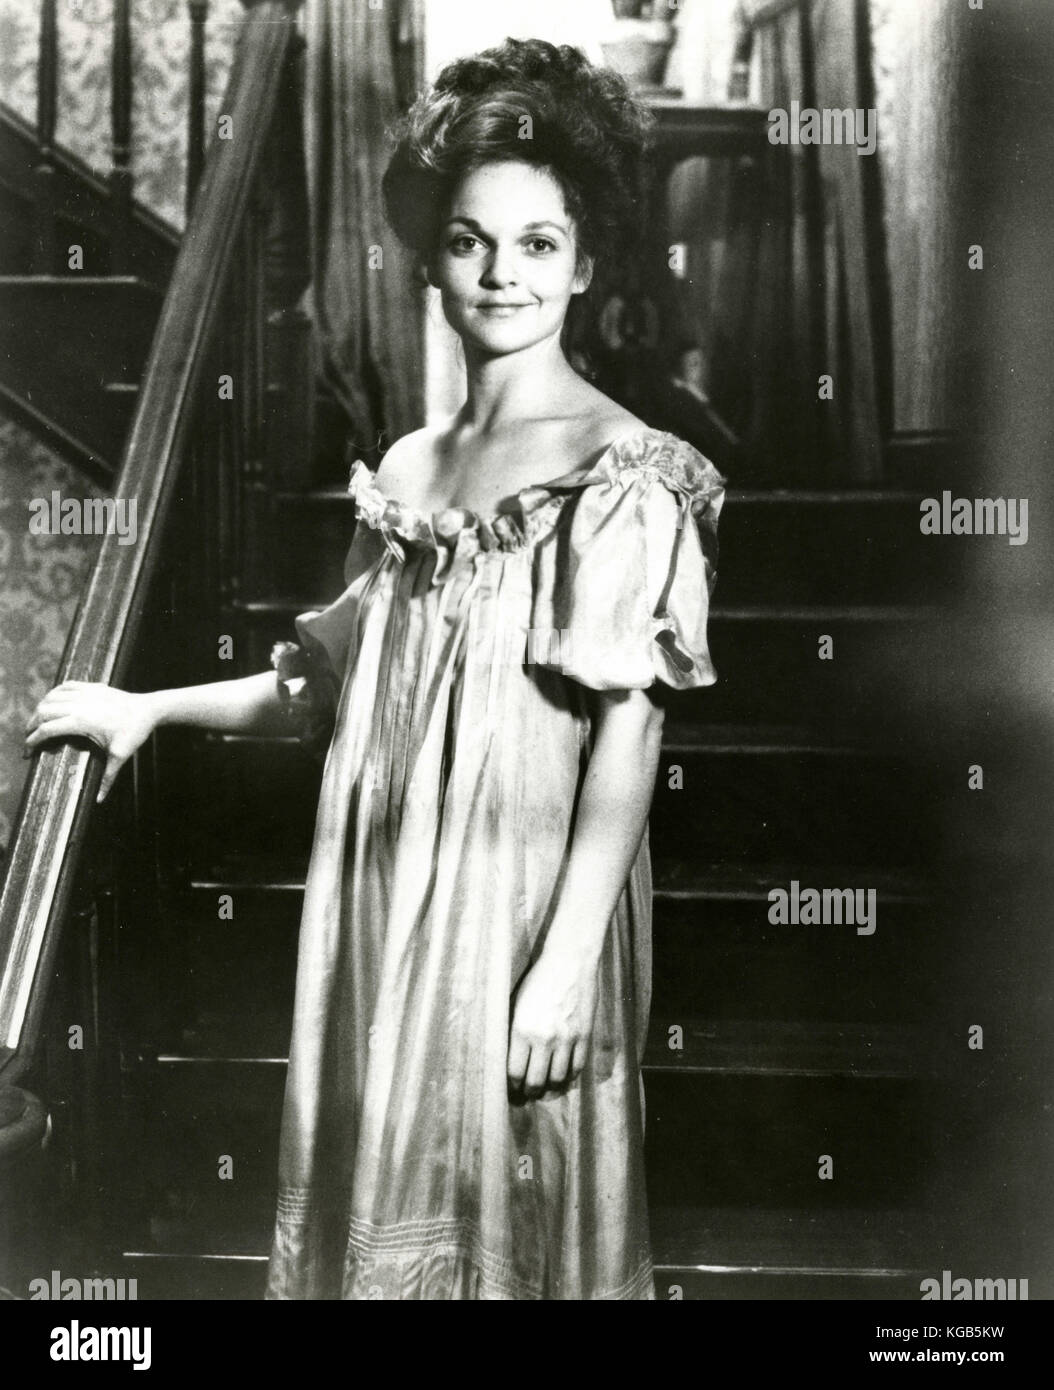 L'actrice Pamela Reed dans le film The Long Riders, 1980 Photo Stock